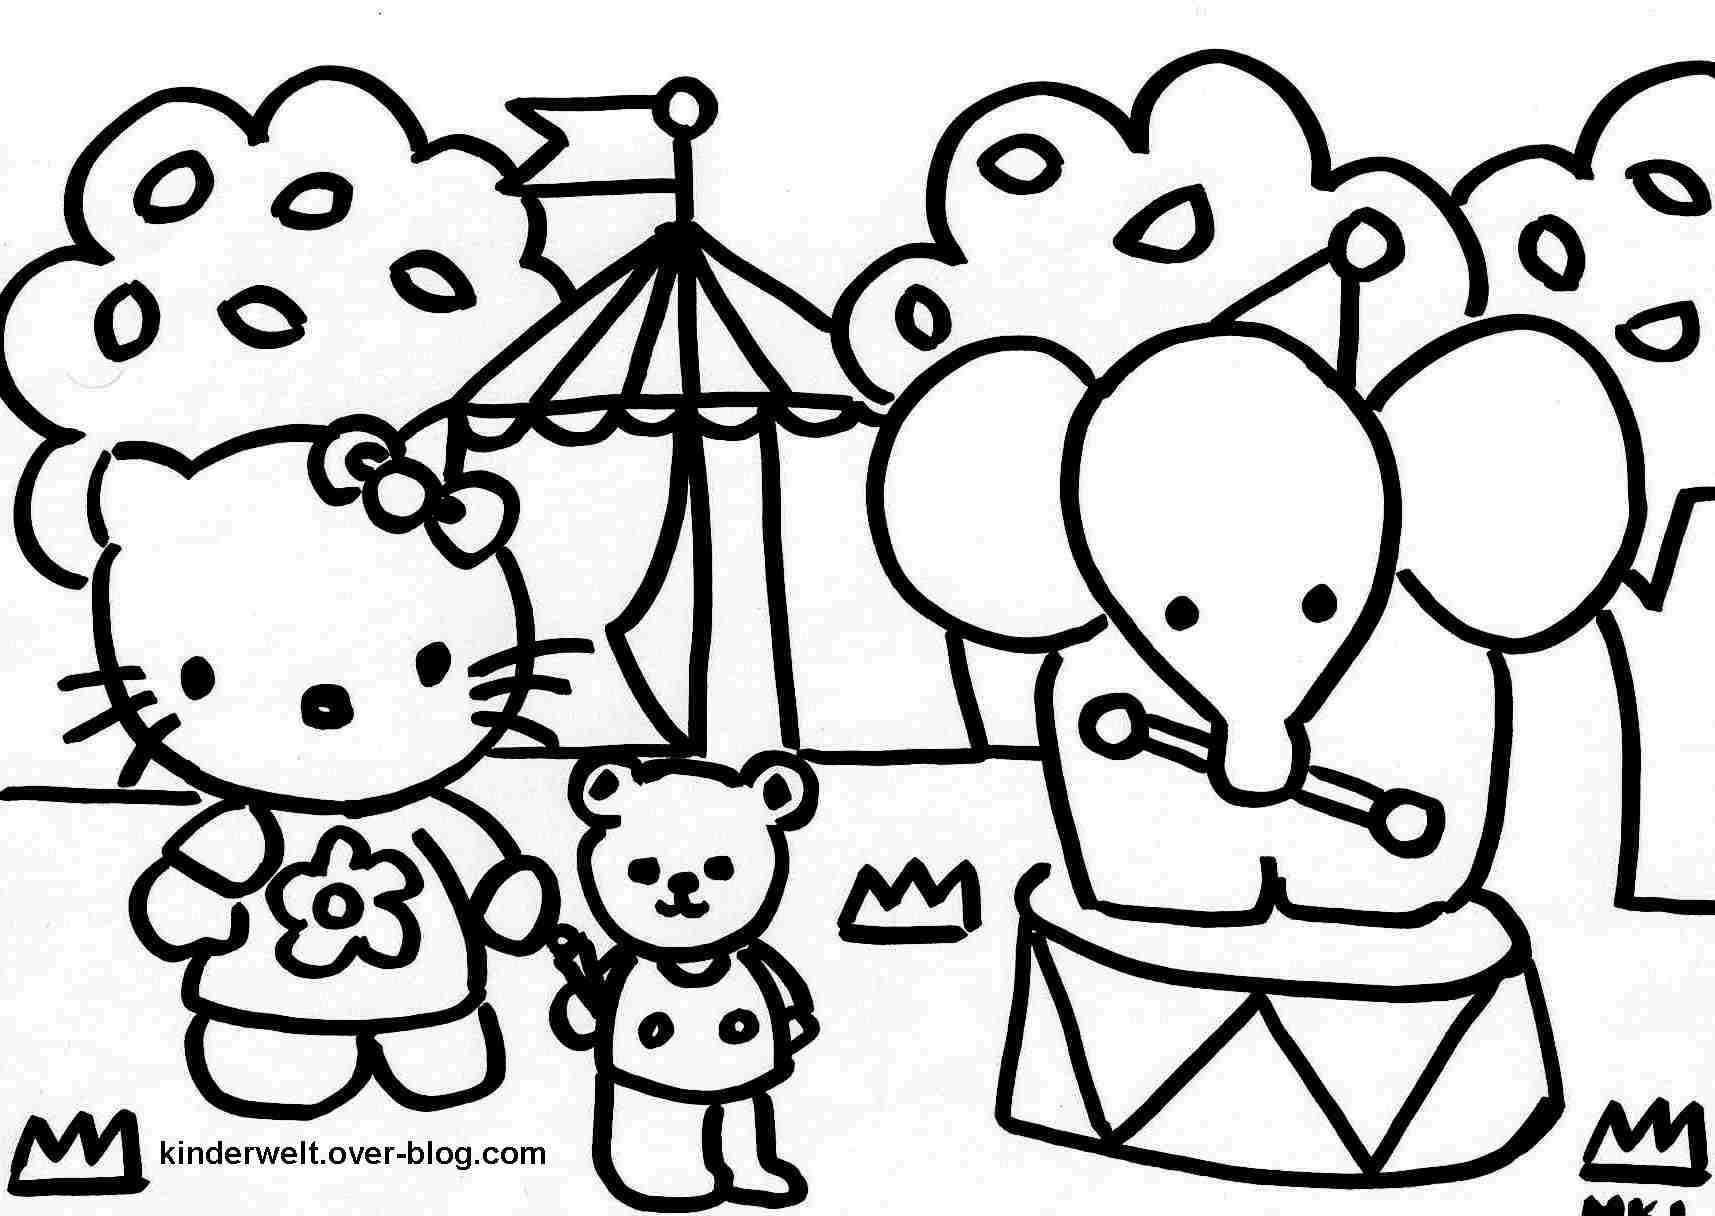 hello kitty ausmalbilder 06 | ausmalbild | Pinterest ...